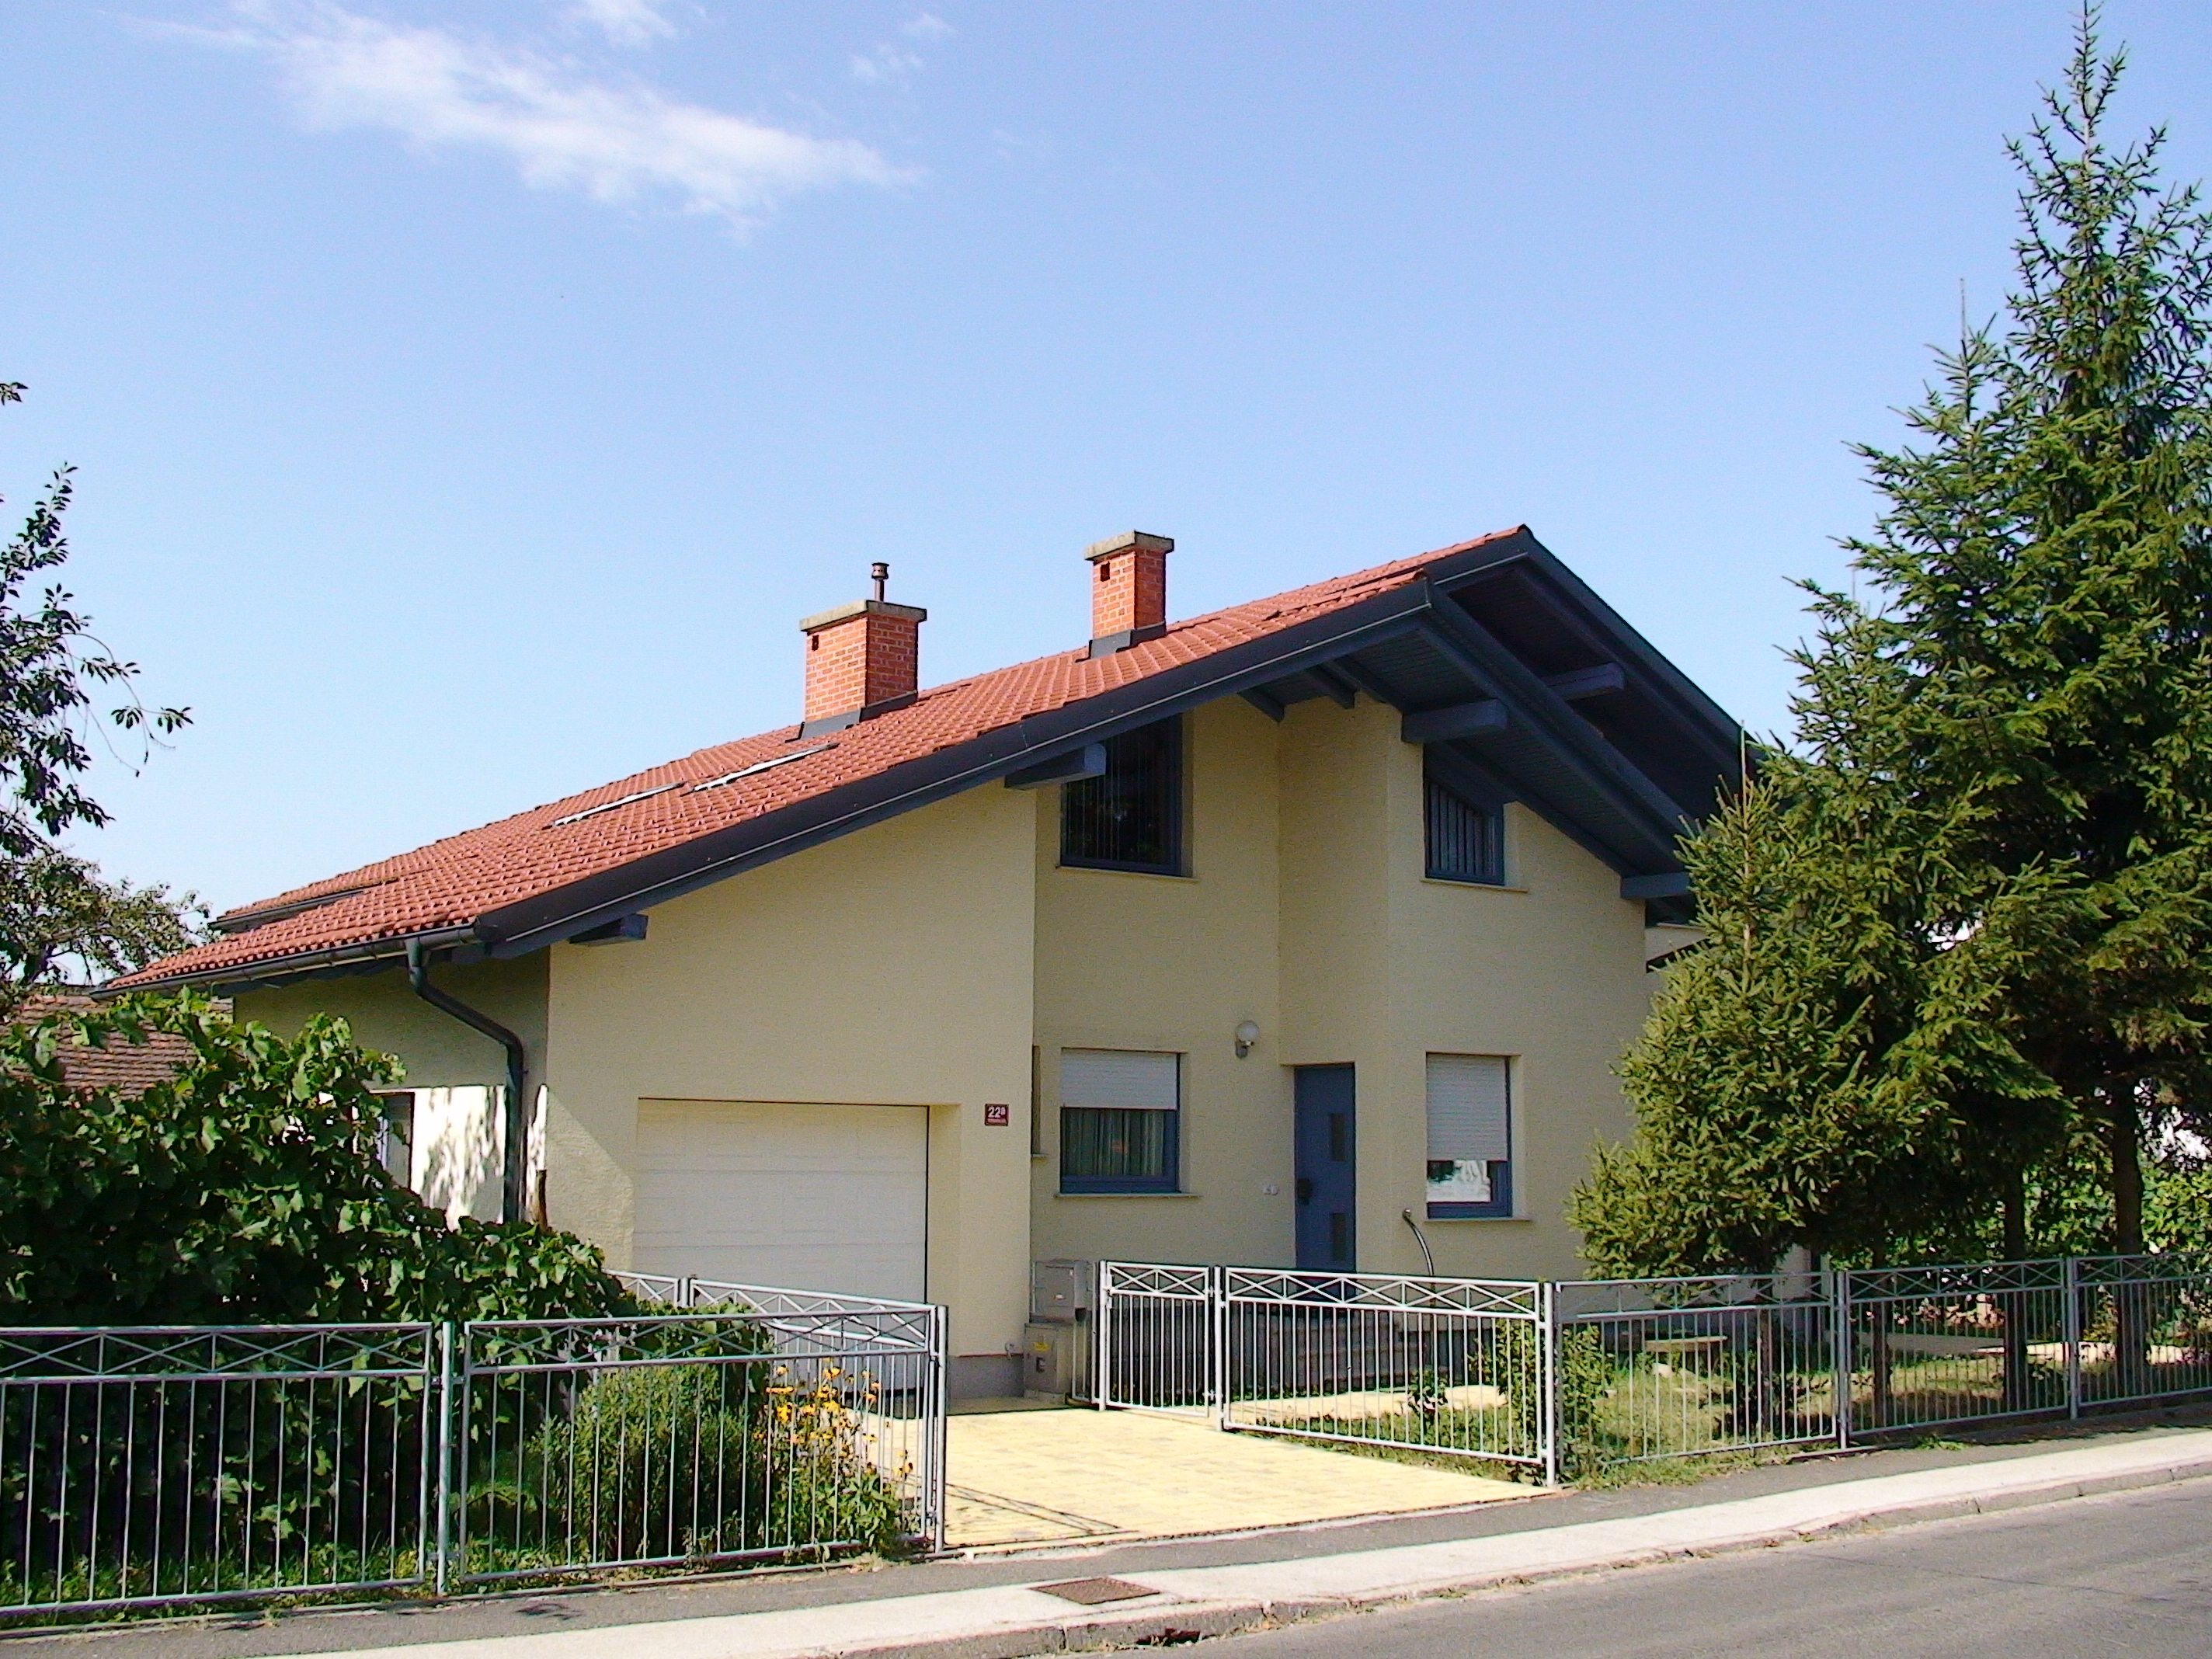 Beautiful detached house for sale in Murska Sobota